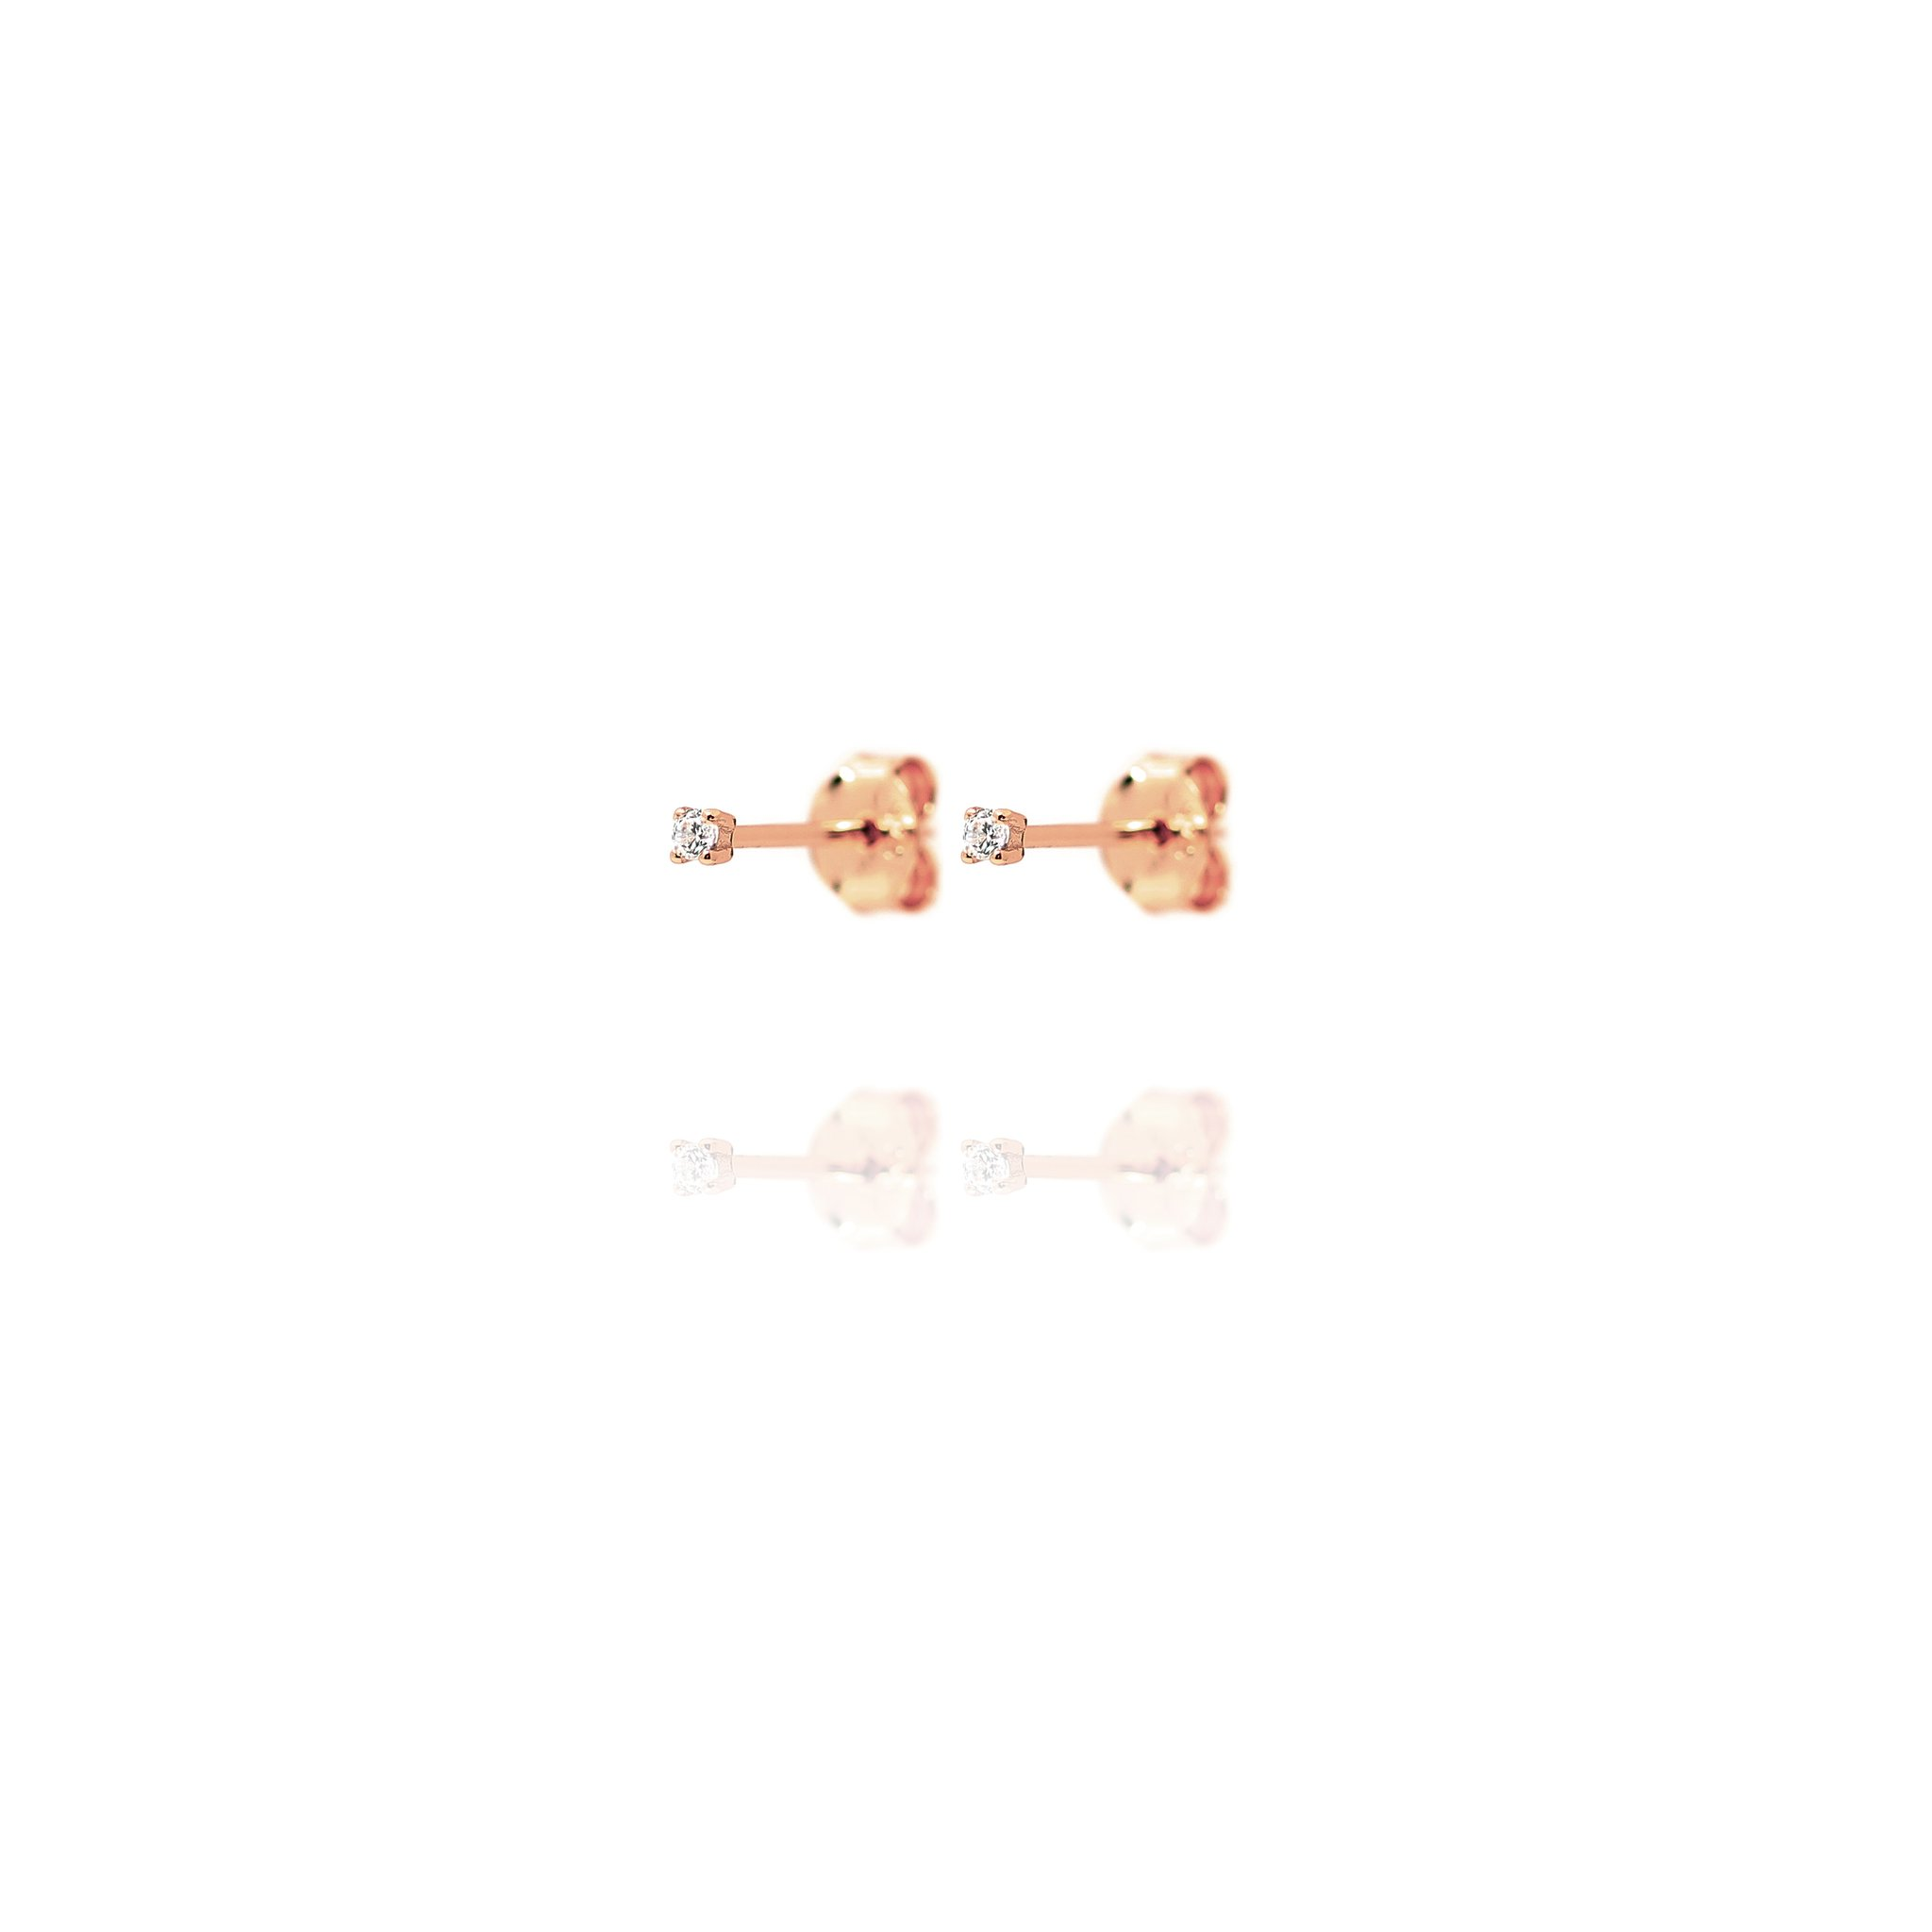 Stud Earrings Tiny Cubic Zirconia - Rose Gold Plate on Sterling Silver EG-5/R